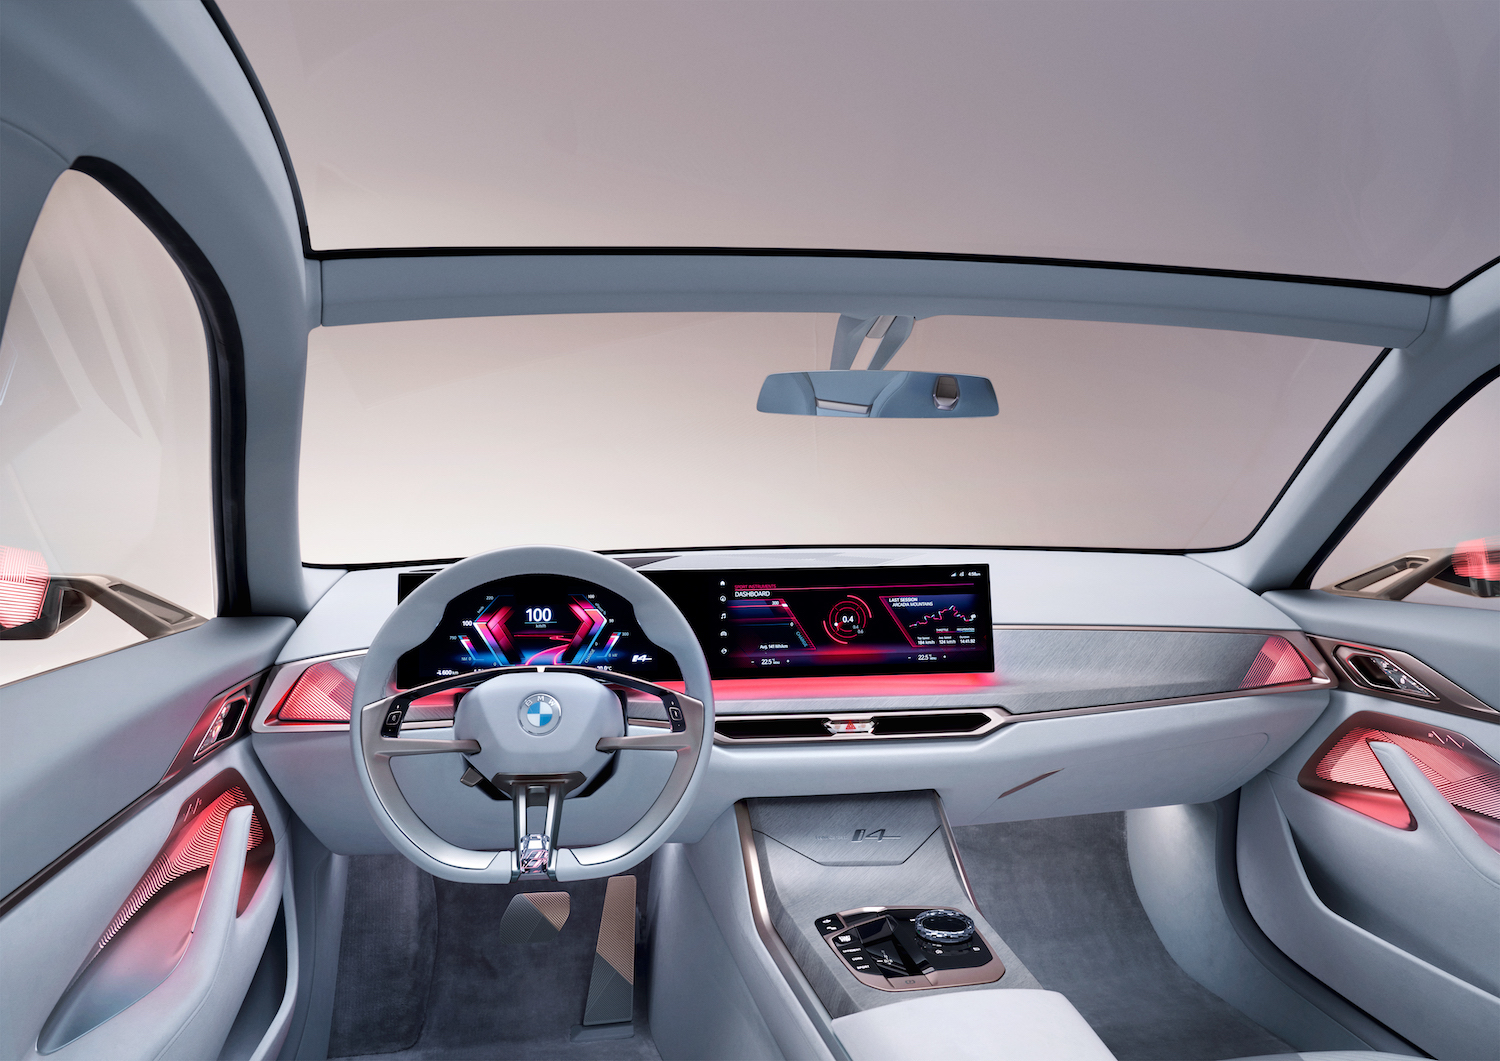 2021 BMW Concept i4 front dash red lighting